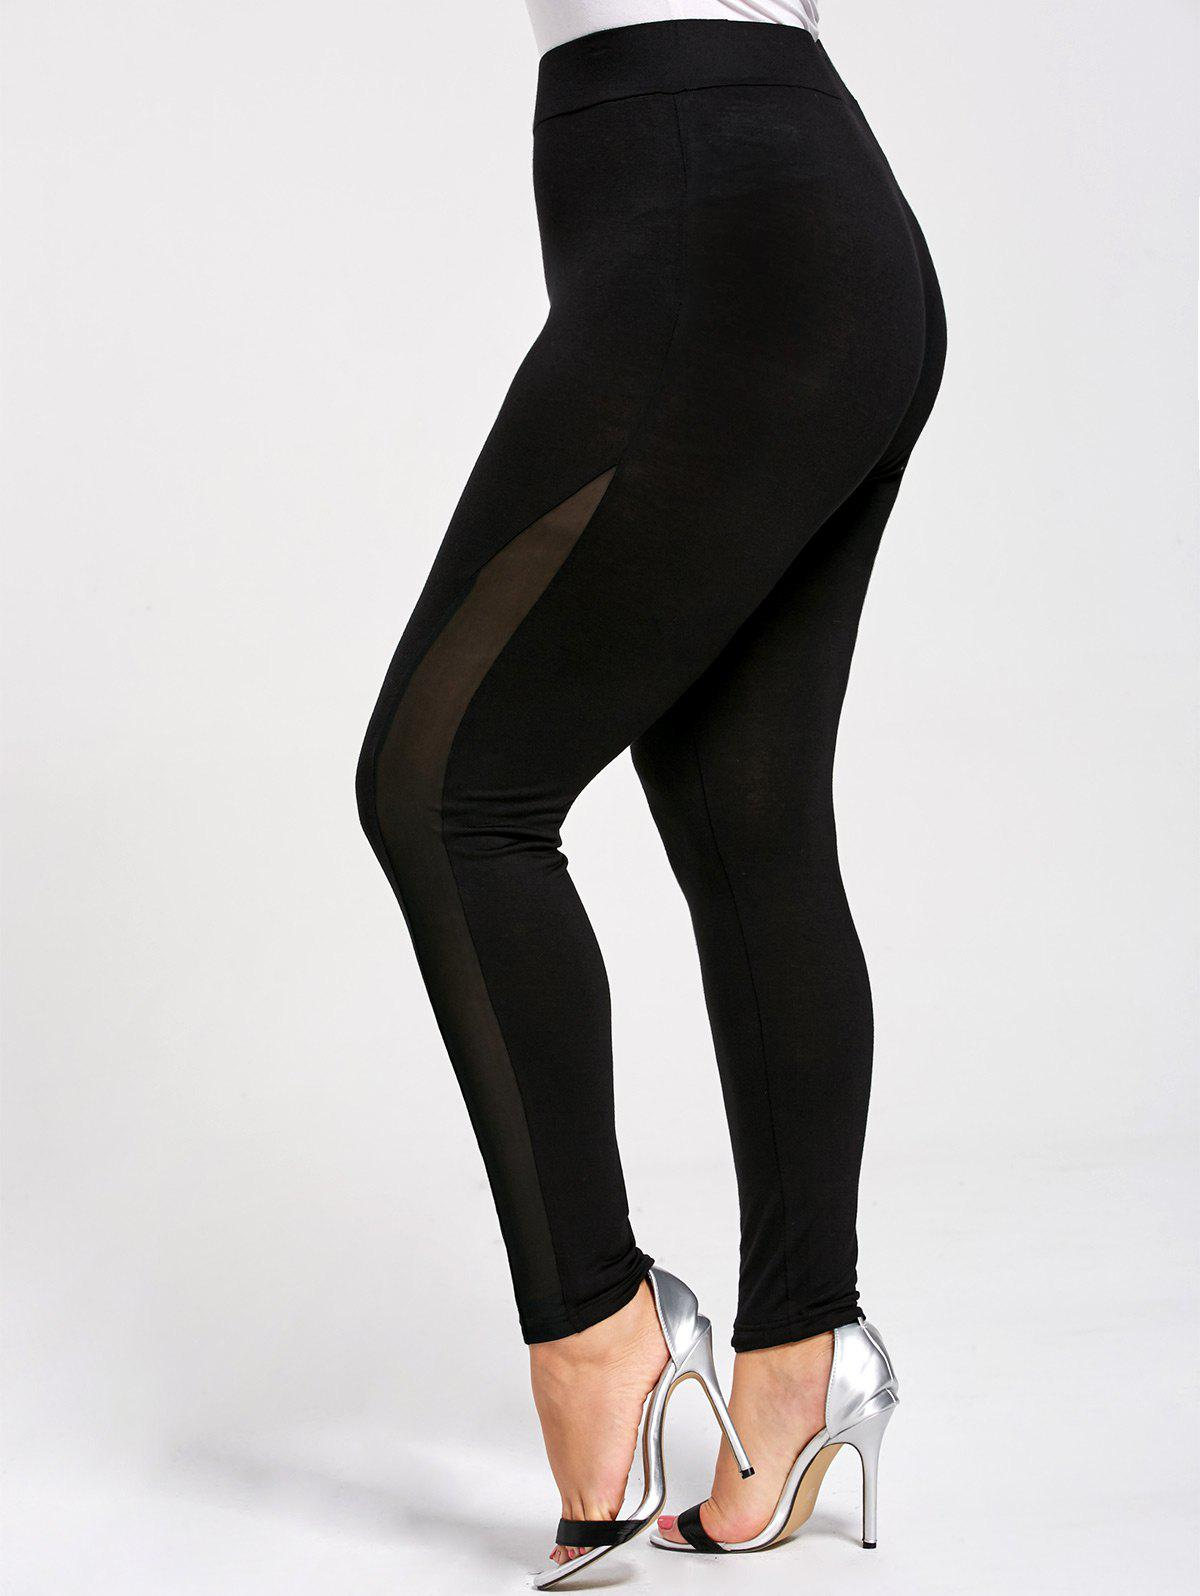 Mesh Panel Plus Size Skinny LeggingsWOMEN<br><br>Size: 4XL; Color: BLACK; Style: Active; Length: Normal; Material: Cotton,Spandex; Fit Type: Skinny; Waist Type: High; Closure Type: Elastic Waist; Pattern Type: Solid; Pant Style: Pencil Pants; Weight: 0.2700kg; Package Contents: 1 x Leggings;